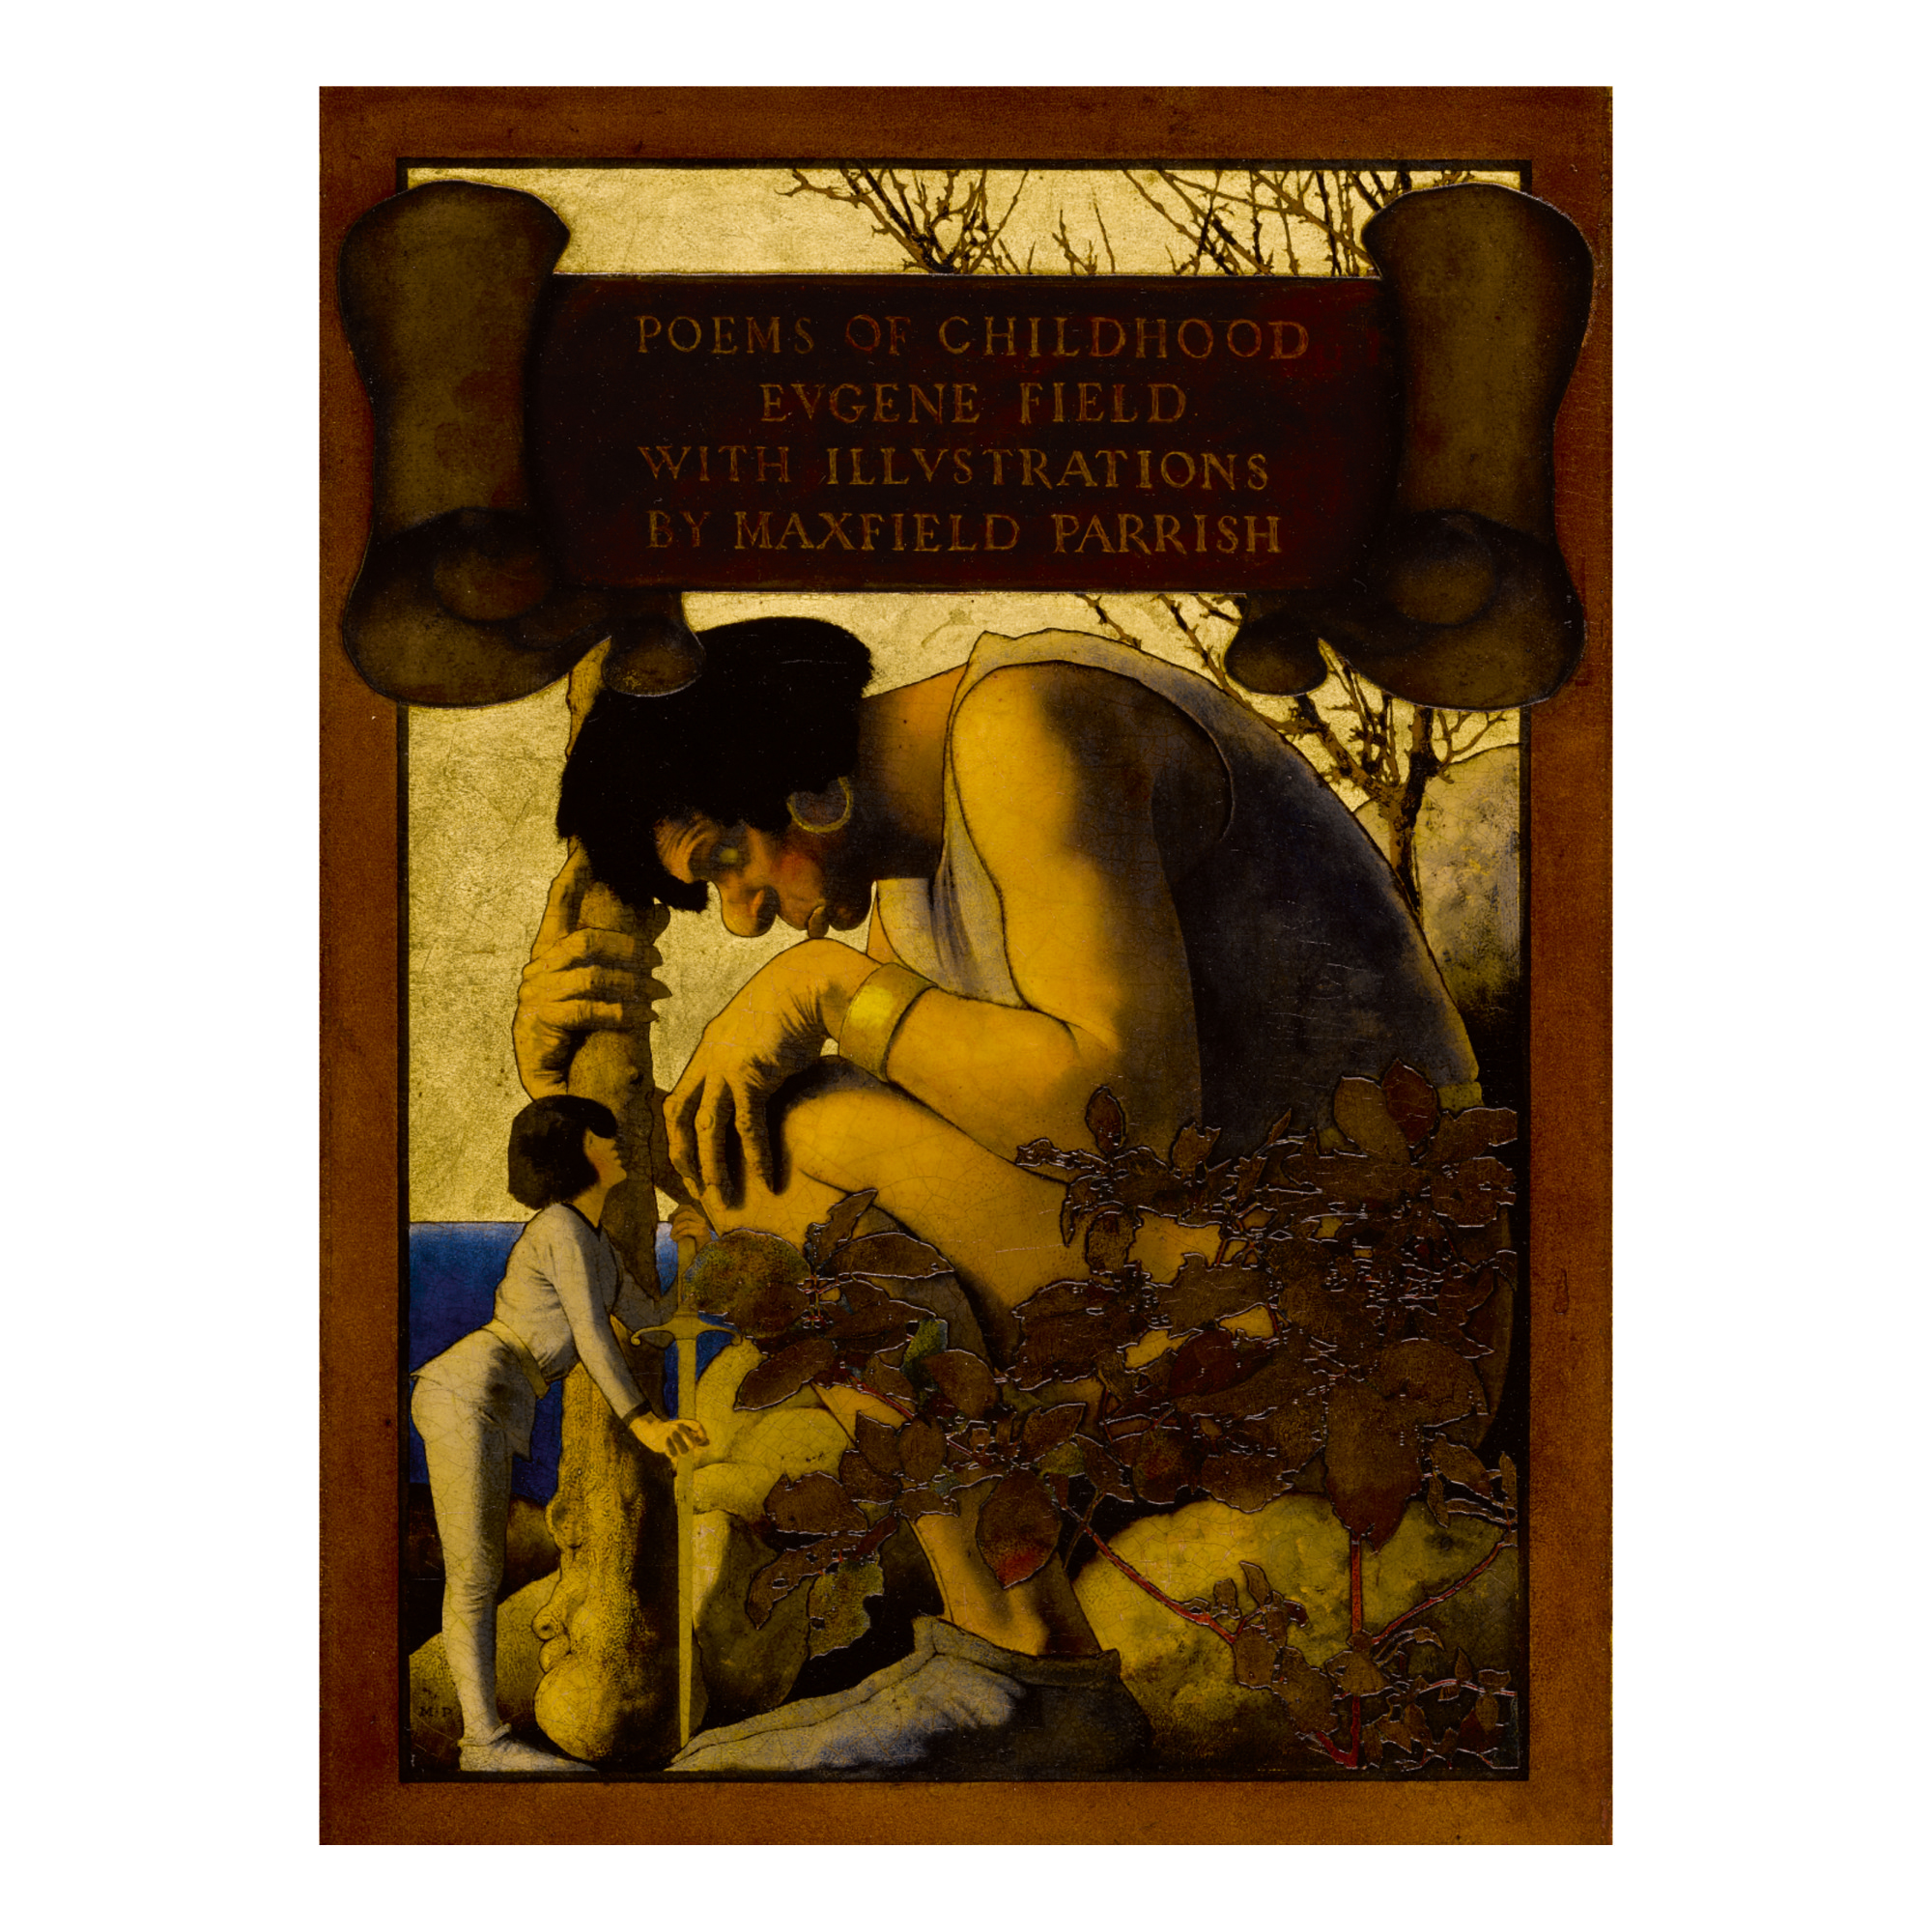 MAXFIELD PARRISH   GIANT WITH JACK AT HIS FEET (POEMS OF CHILDHOOD)